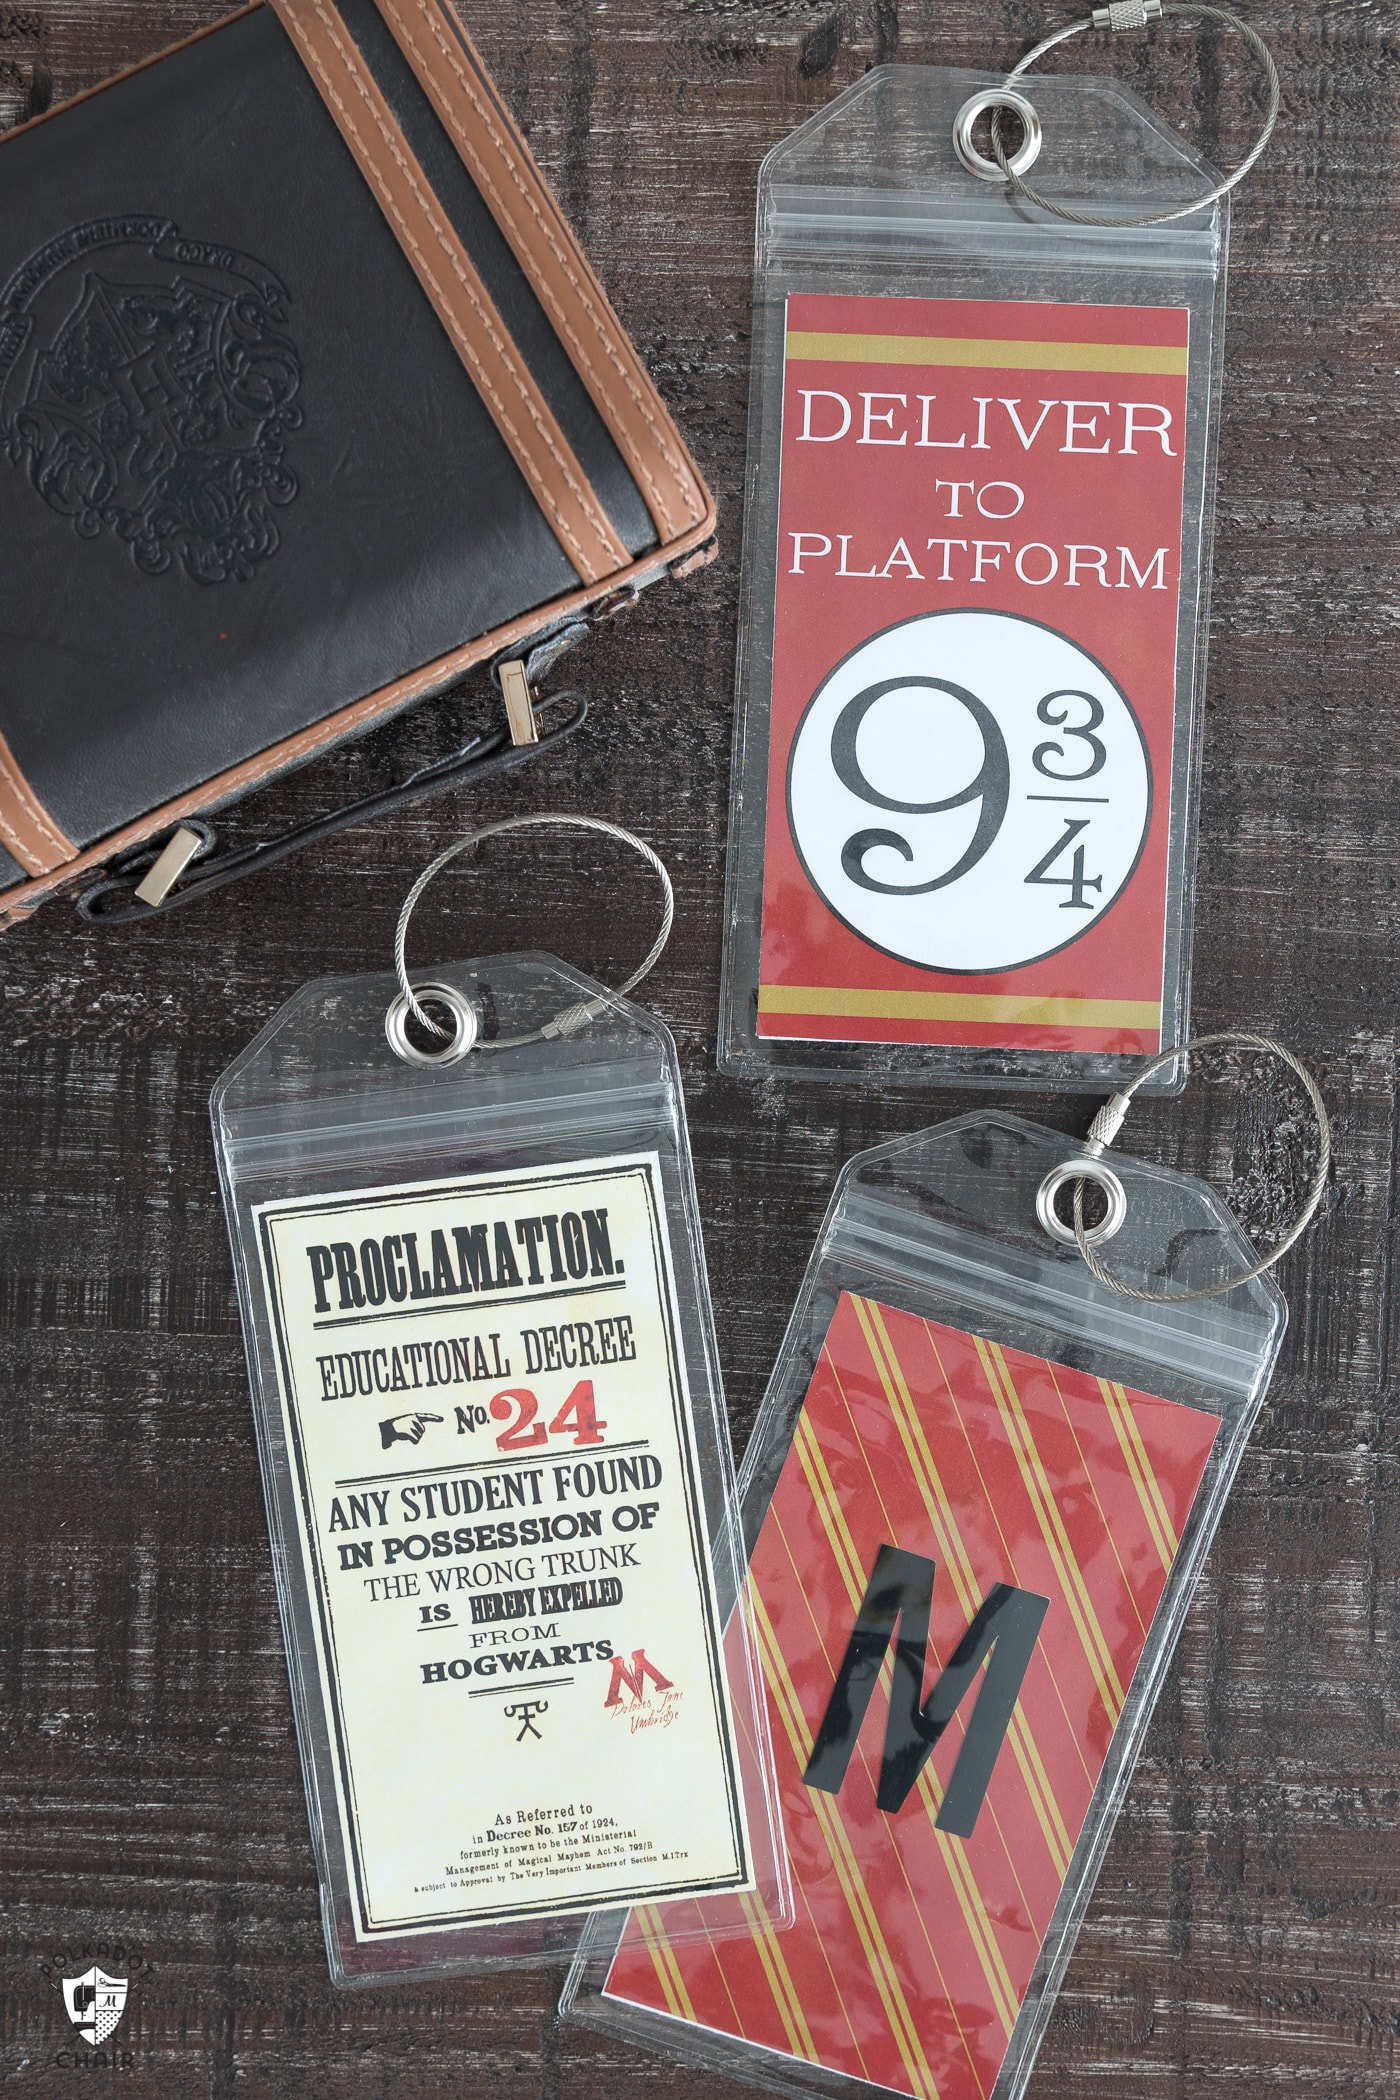 Harry Potter Printable Luggage Tags - The Polka Dot Chair